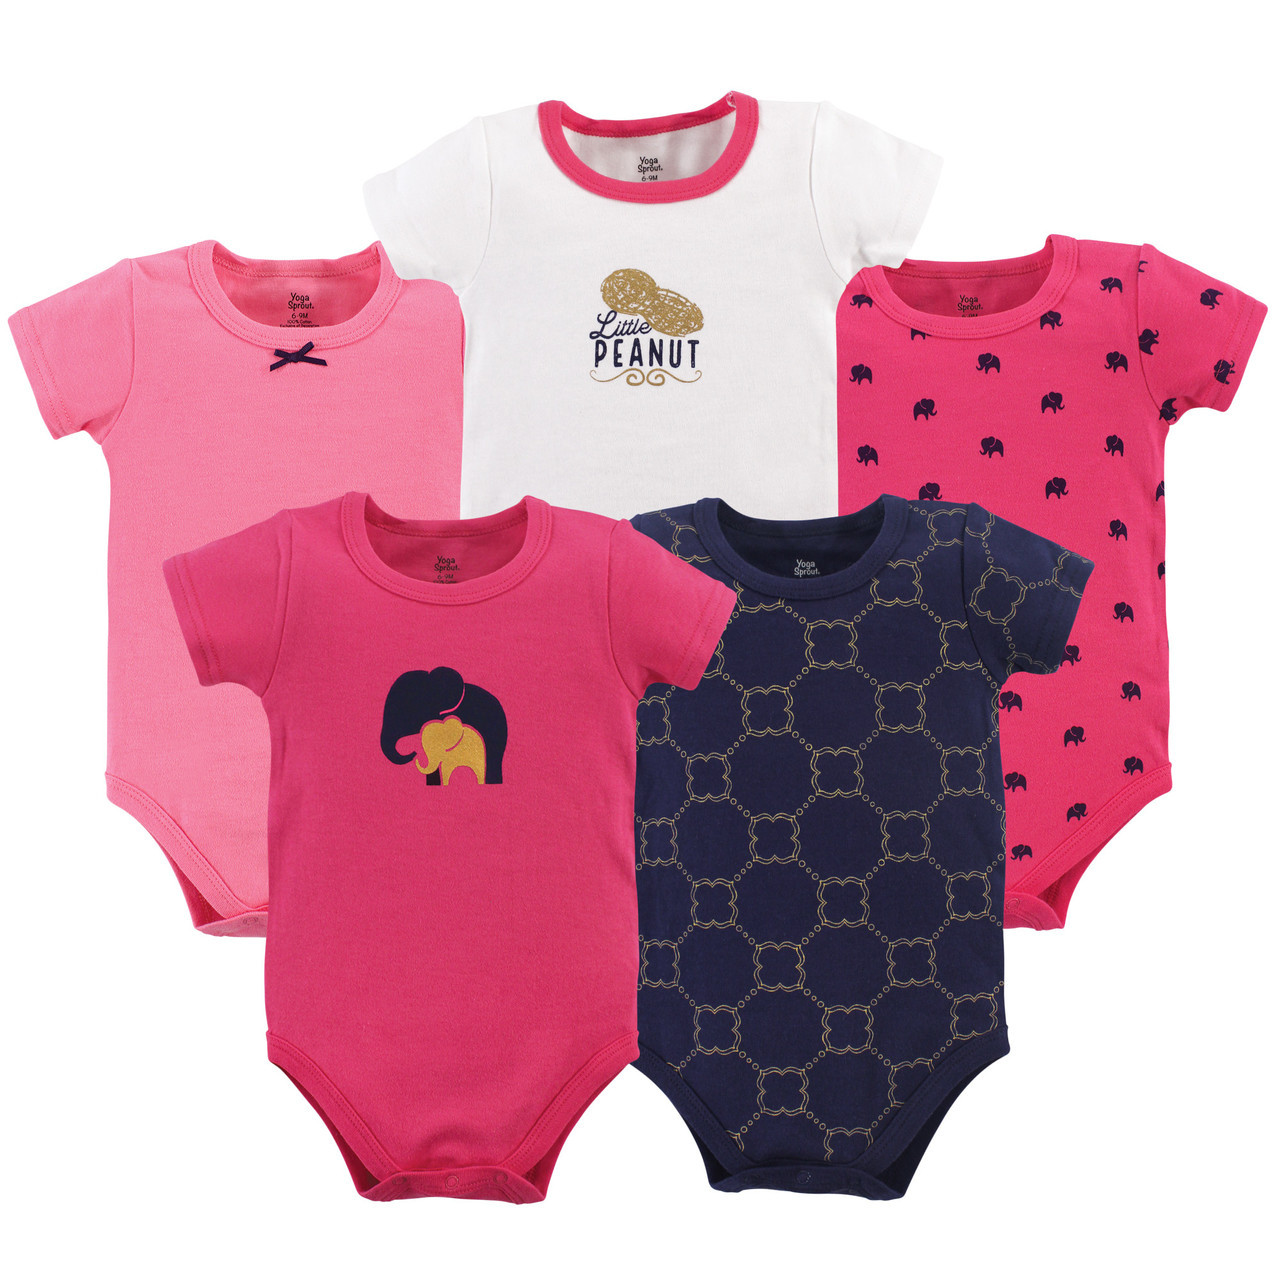 Yoga Sprout Baby Cotton Bodysuits,